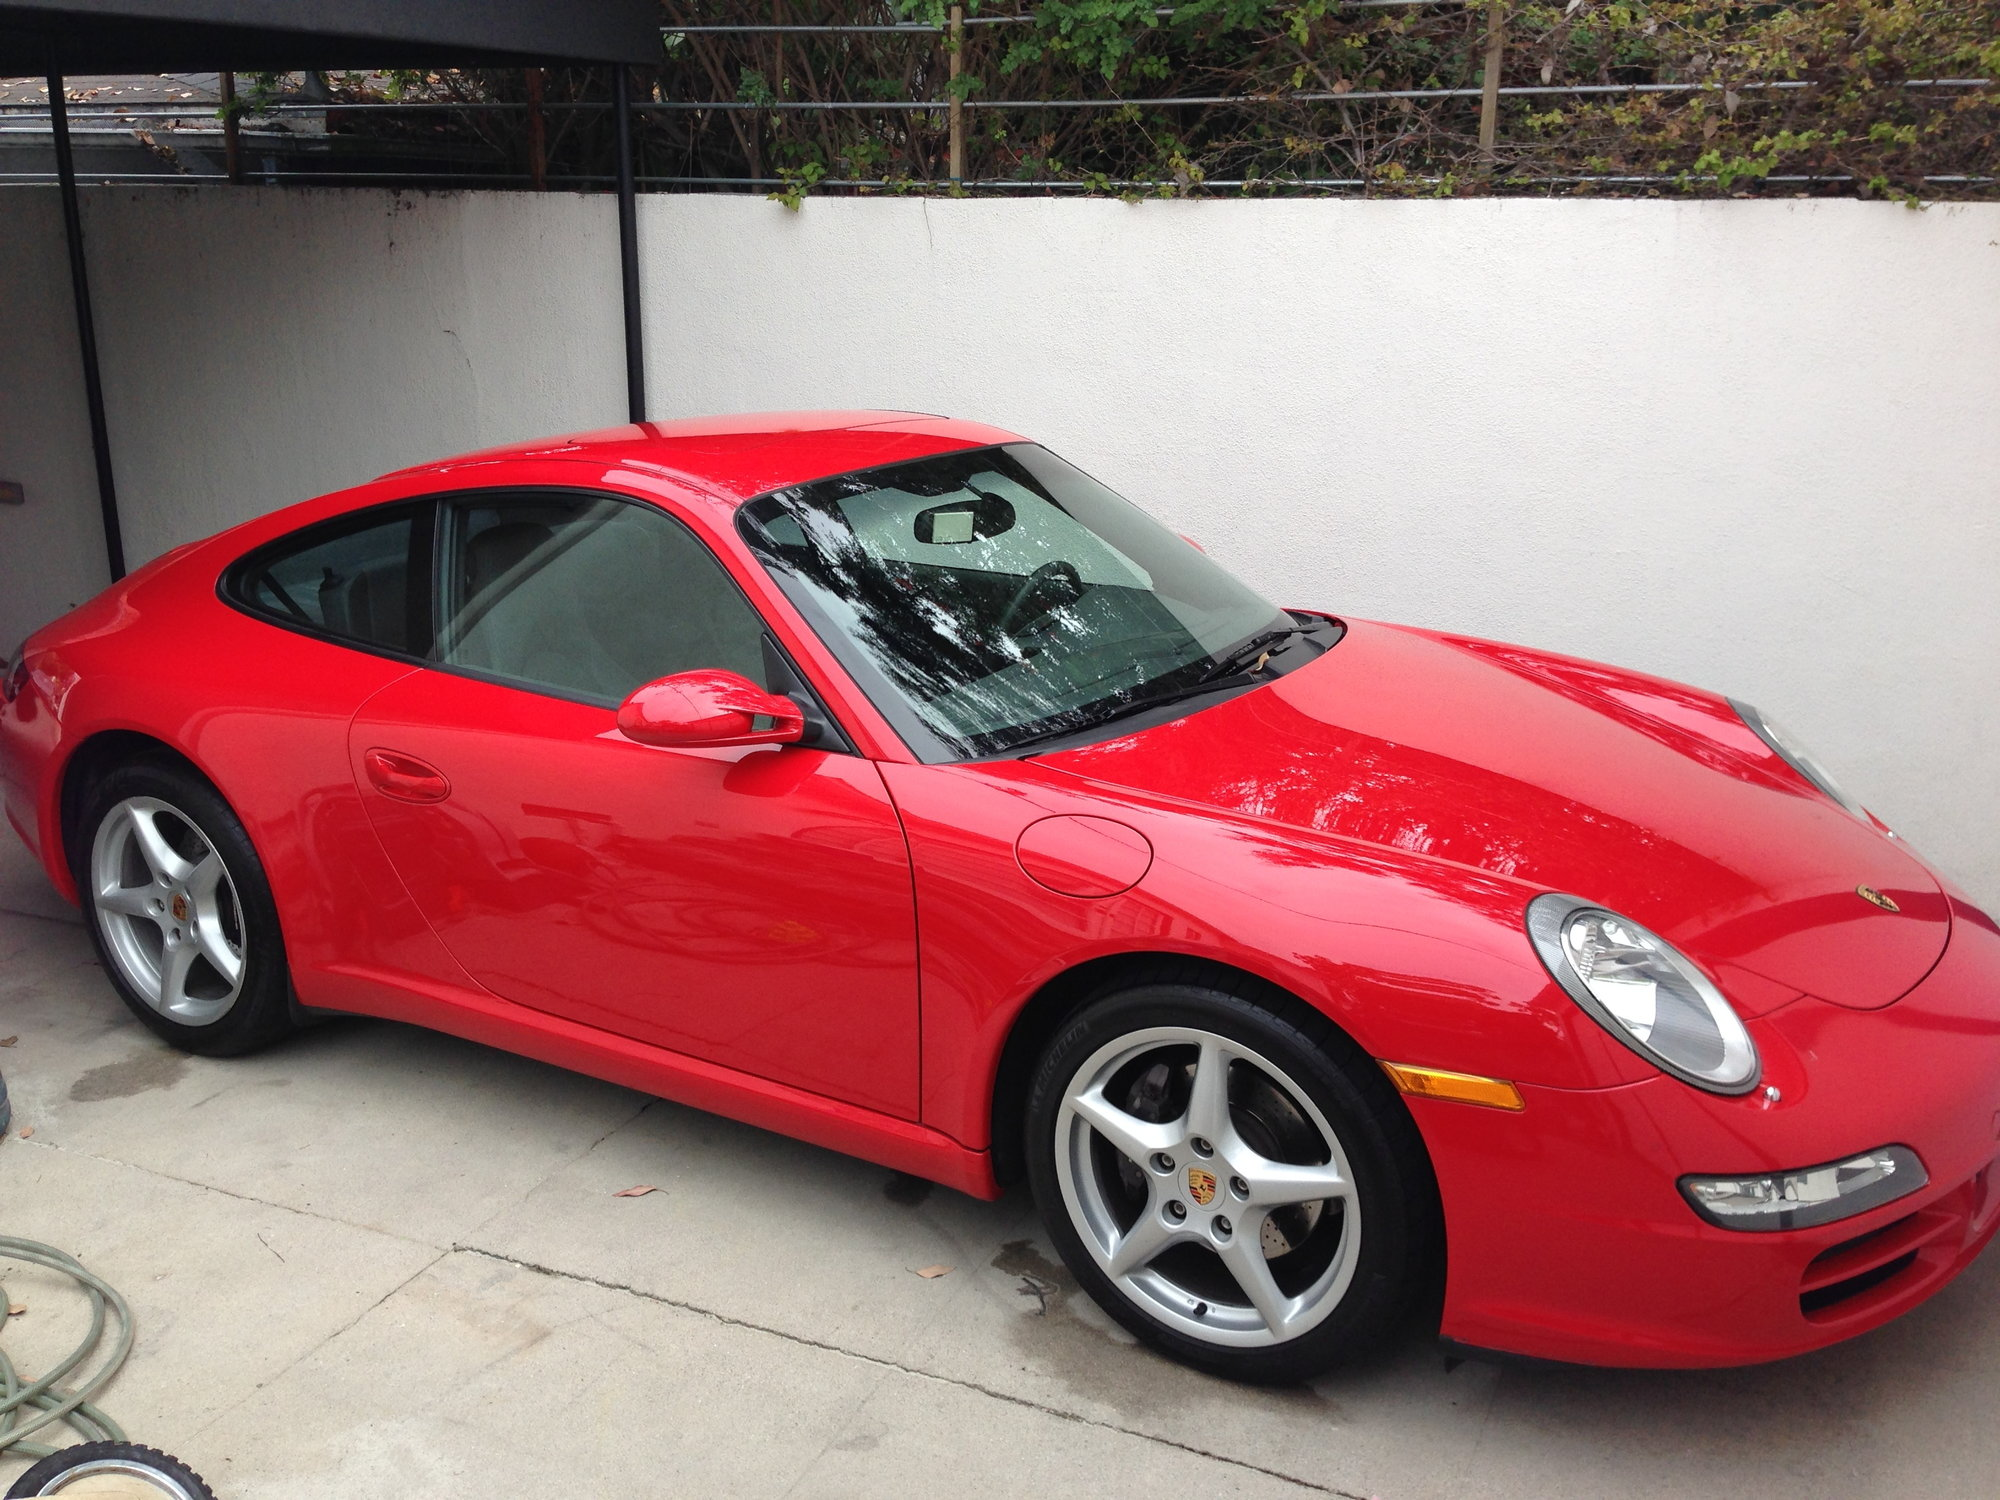 SOLD: Title: Immaculate One Owner 2005 Porsche 997 With